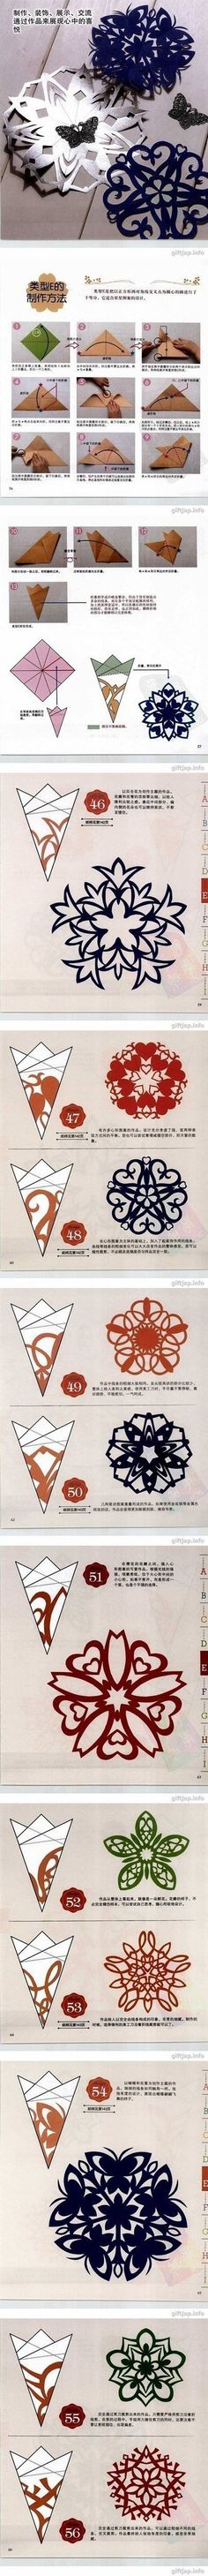 DIY Chinese Paper Cutting                                                                                                                                                                                 More